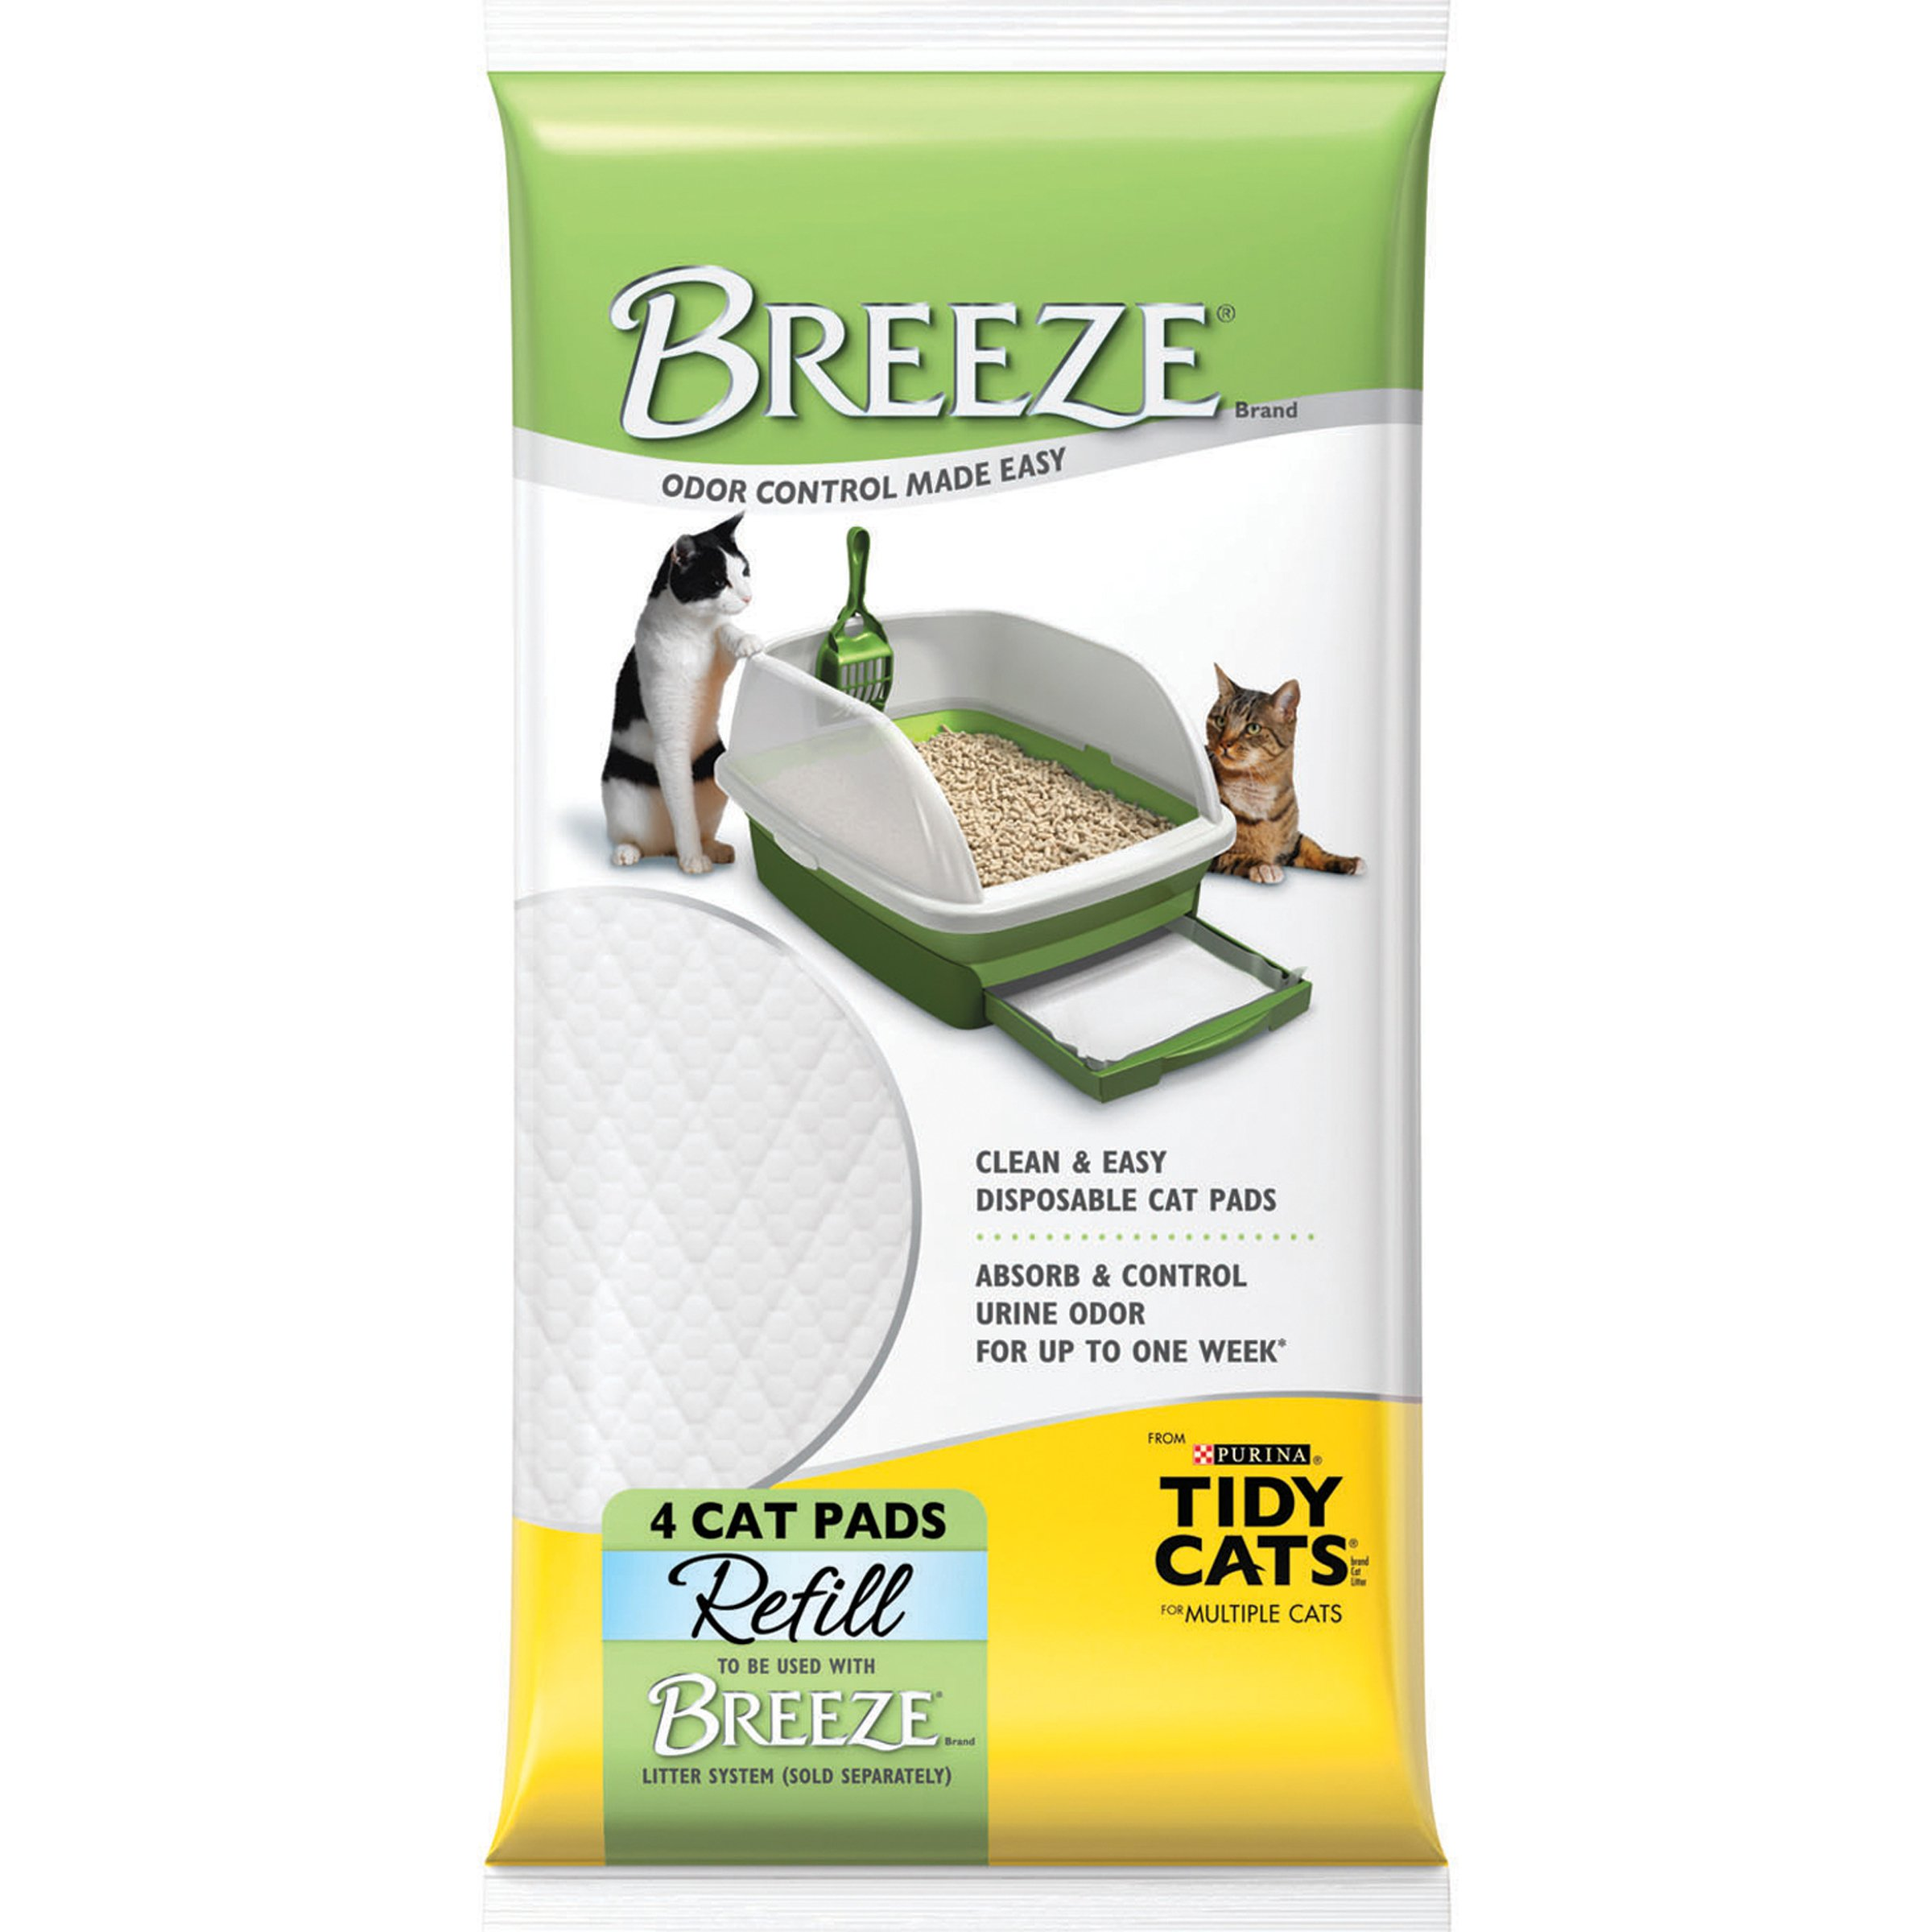 Purina Tidy Cats Breeze Litter System Unscented Cat Pad Refills